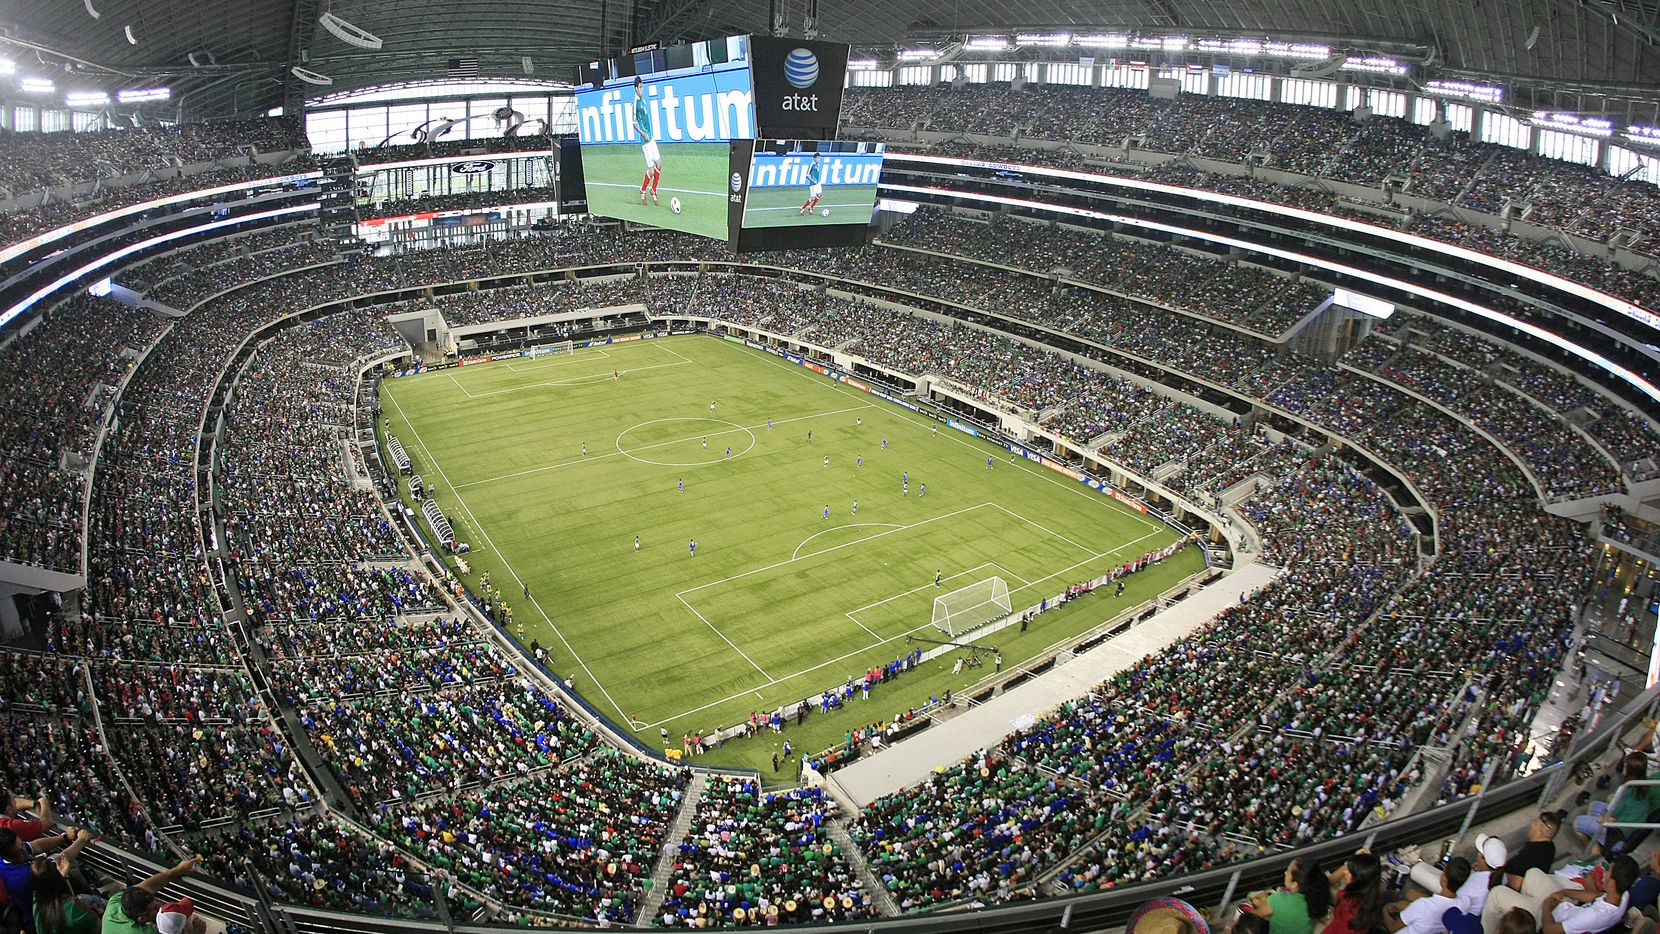 05 June 2011:  Fans during the CONCACAF Gold Cup soccer matches between Mexico versus El Salvador and Costa Rica versus Cuba at Cowboys Stadium in Arlington, Texas.   The attendance was a sellout of  80,108.  Photo by James D. Smith 05312014xALDIA 09072015xPUB